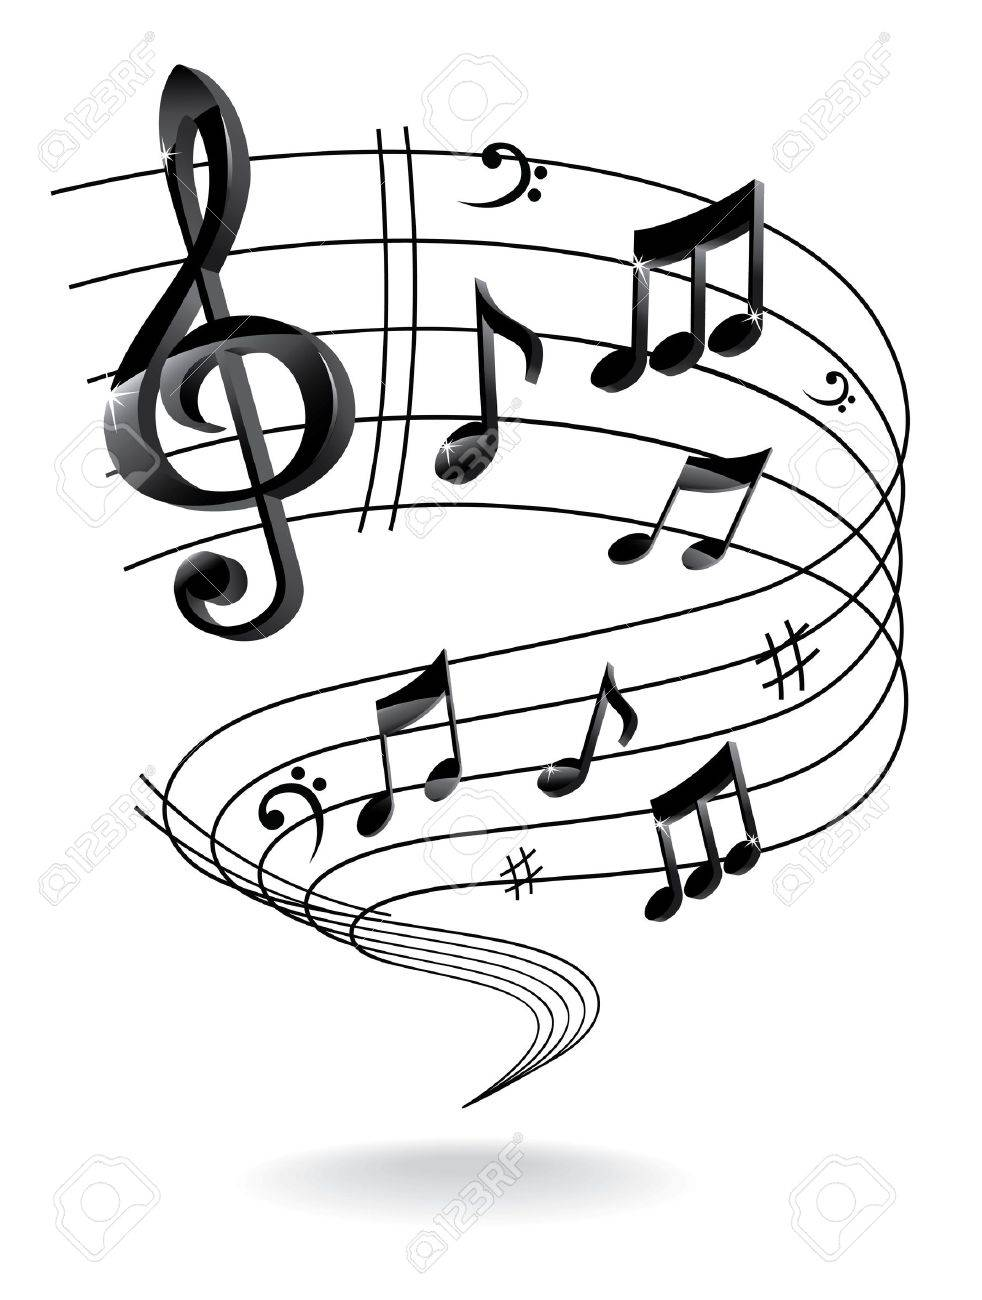 background with music note royalty free cliparts vectors and